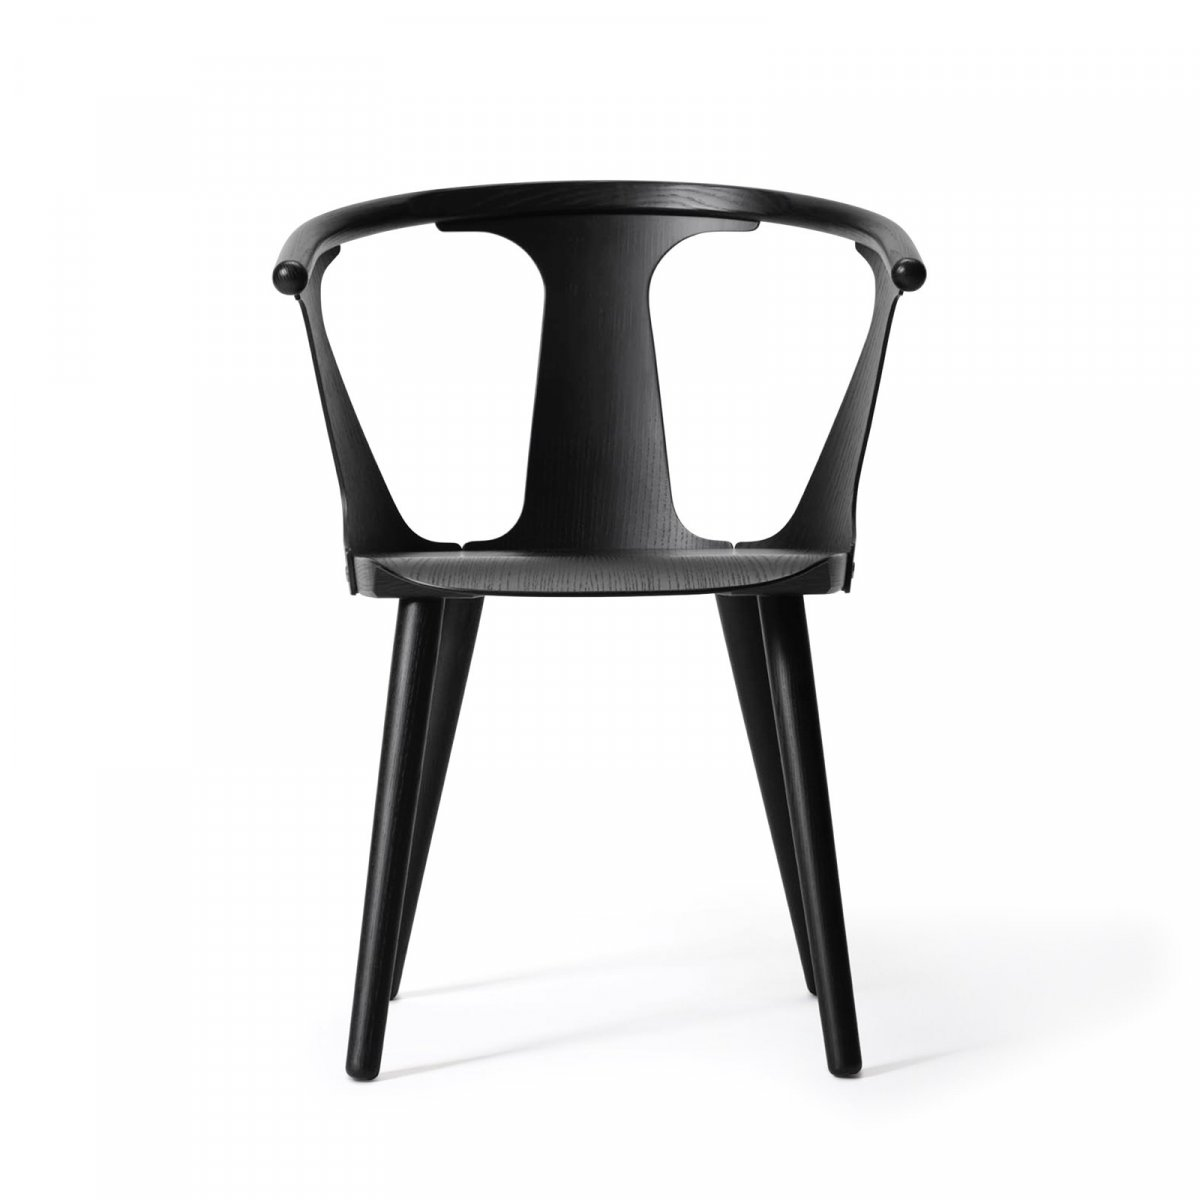 In Between Chair SK1, black stained ash.